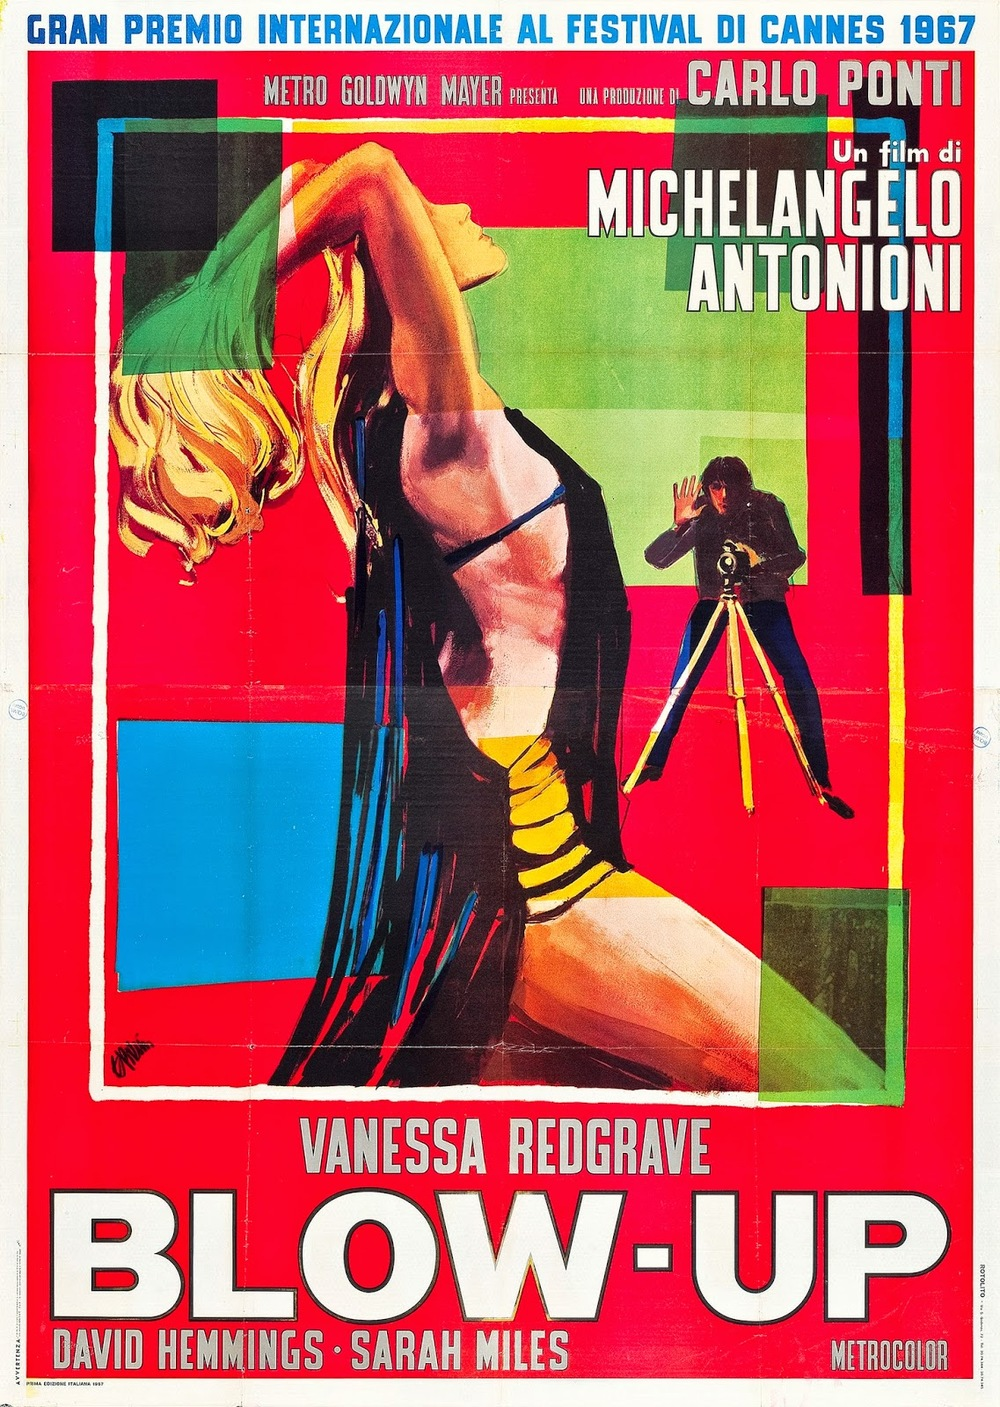 BLOW-UP - Italian Poster by Ercole Brini.jpeg